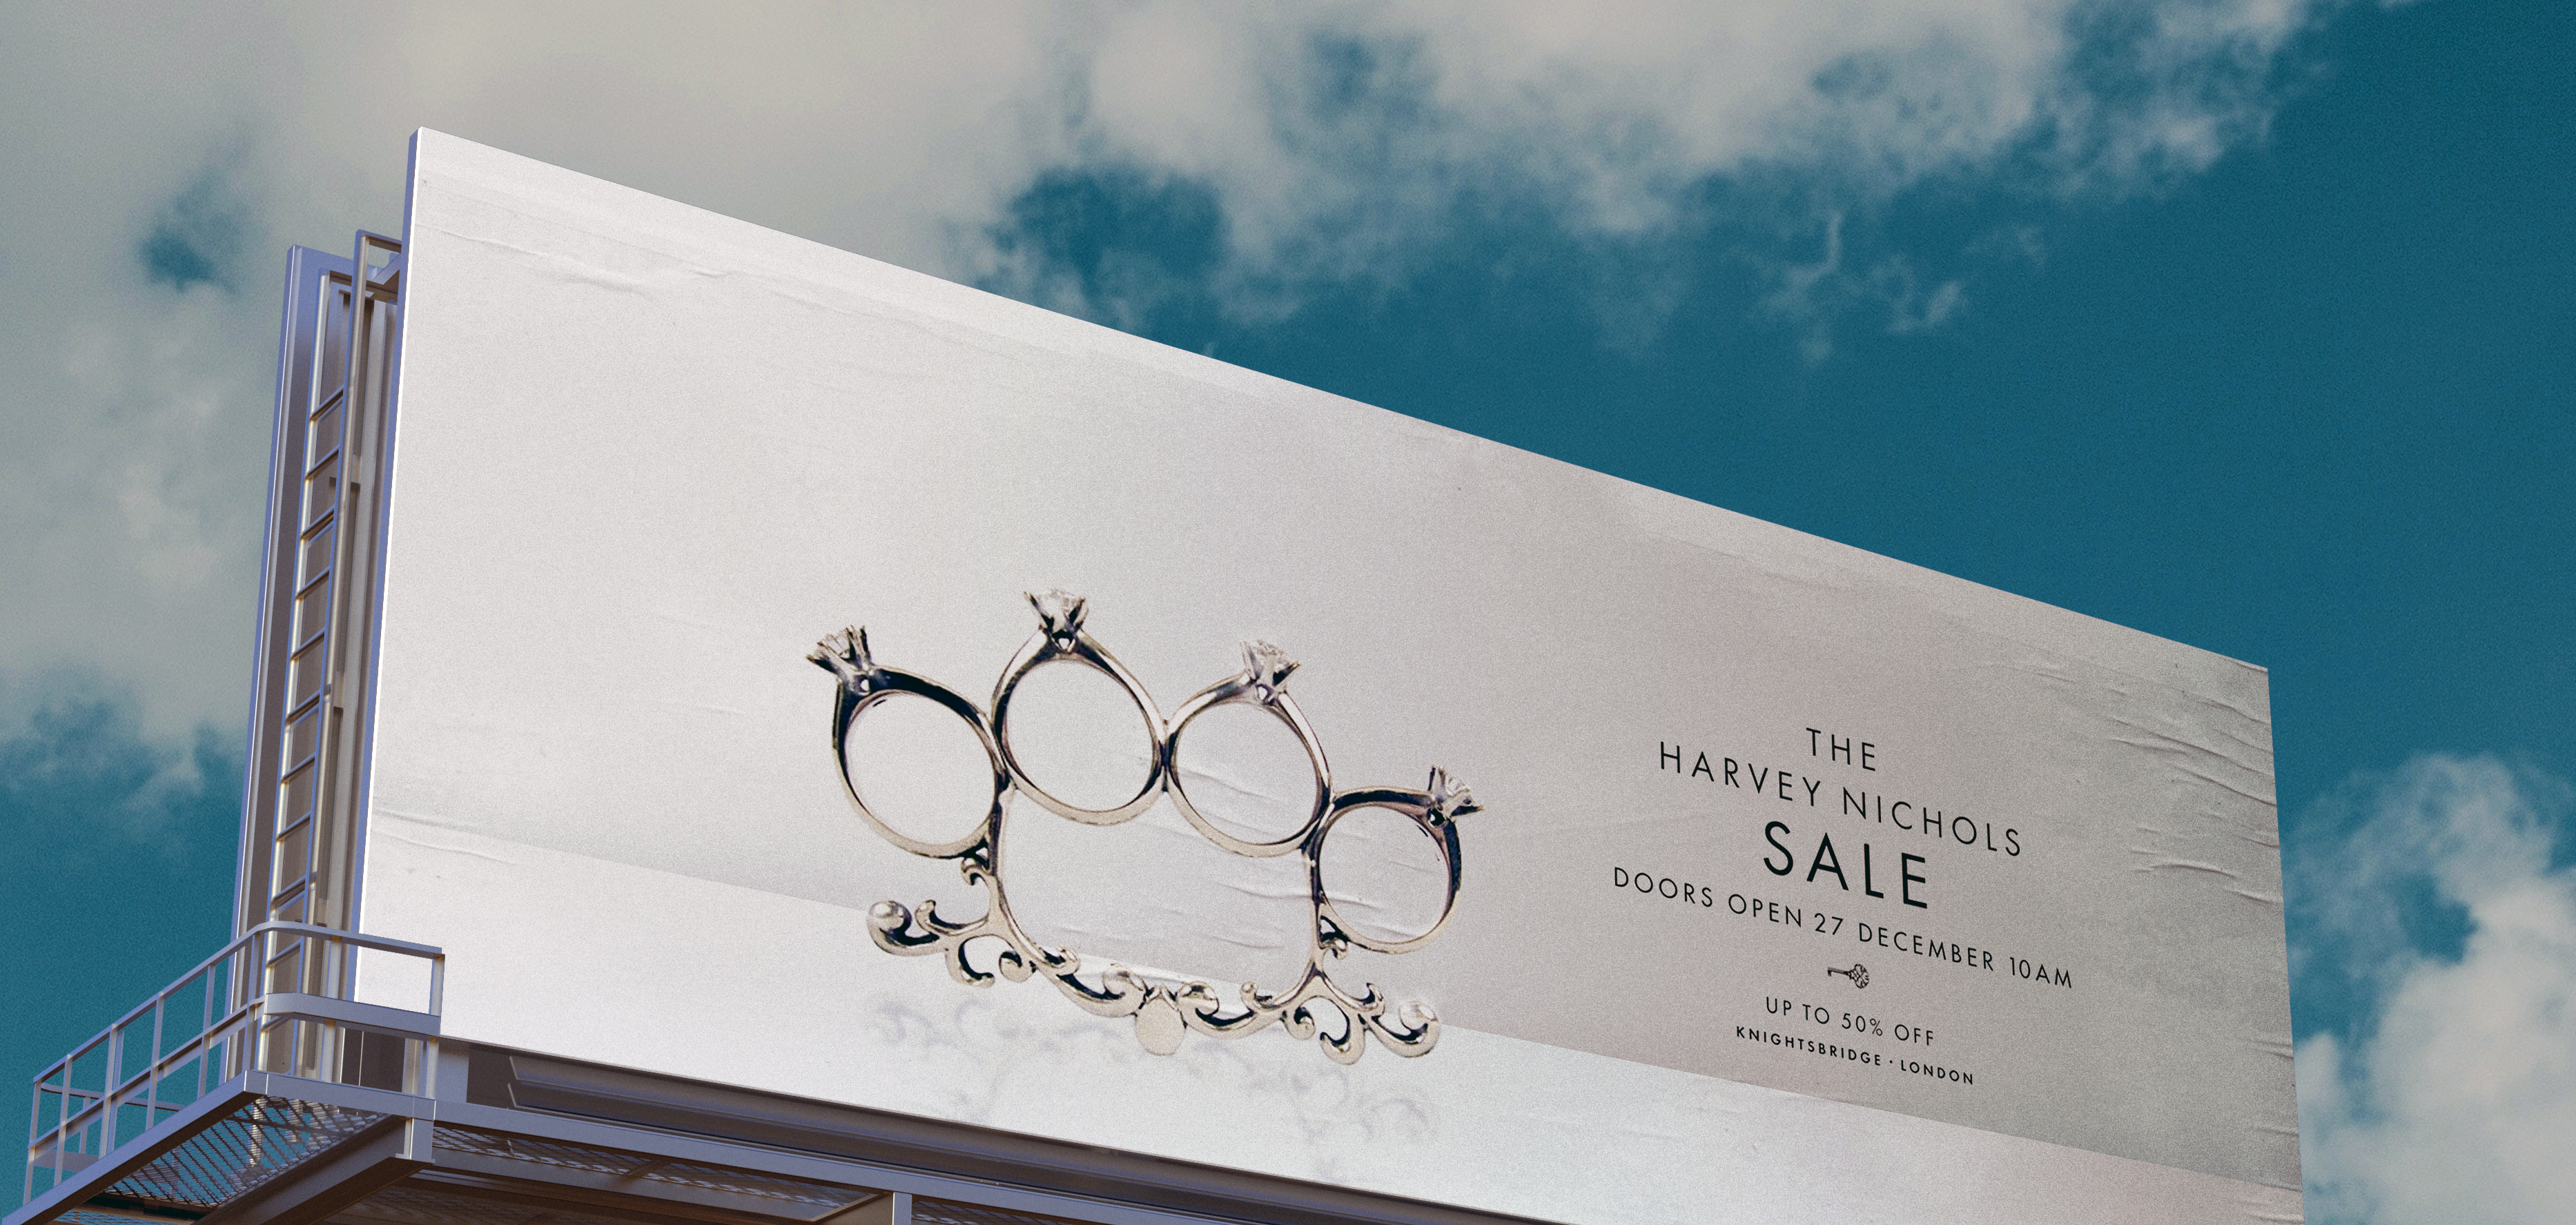 Harvey Nichols Sale Campaign